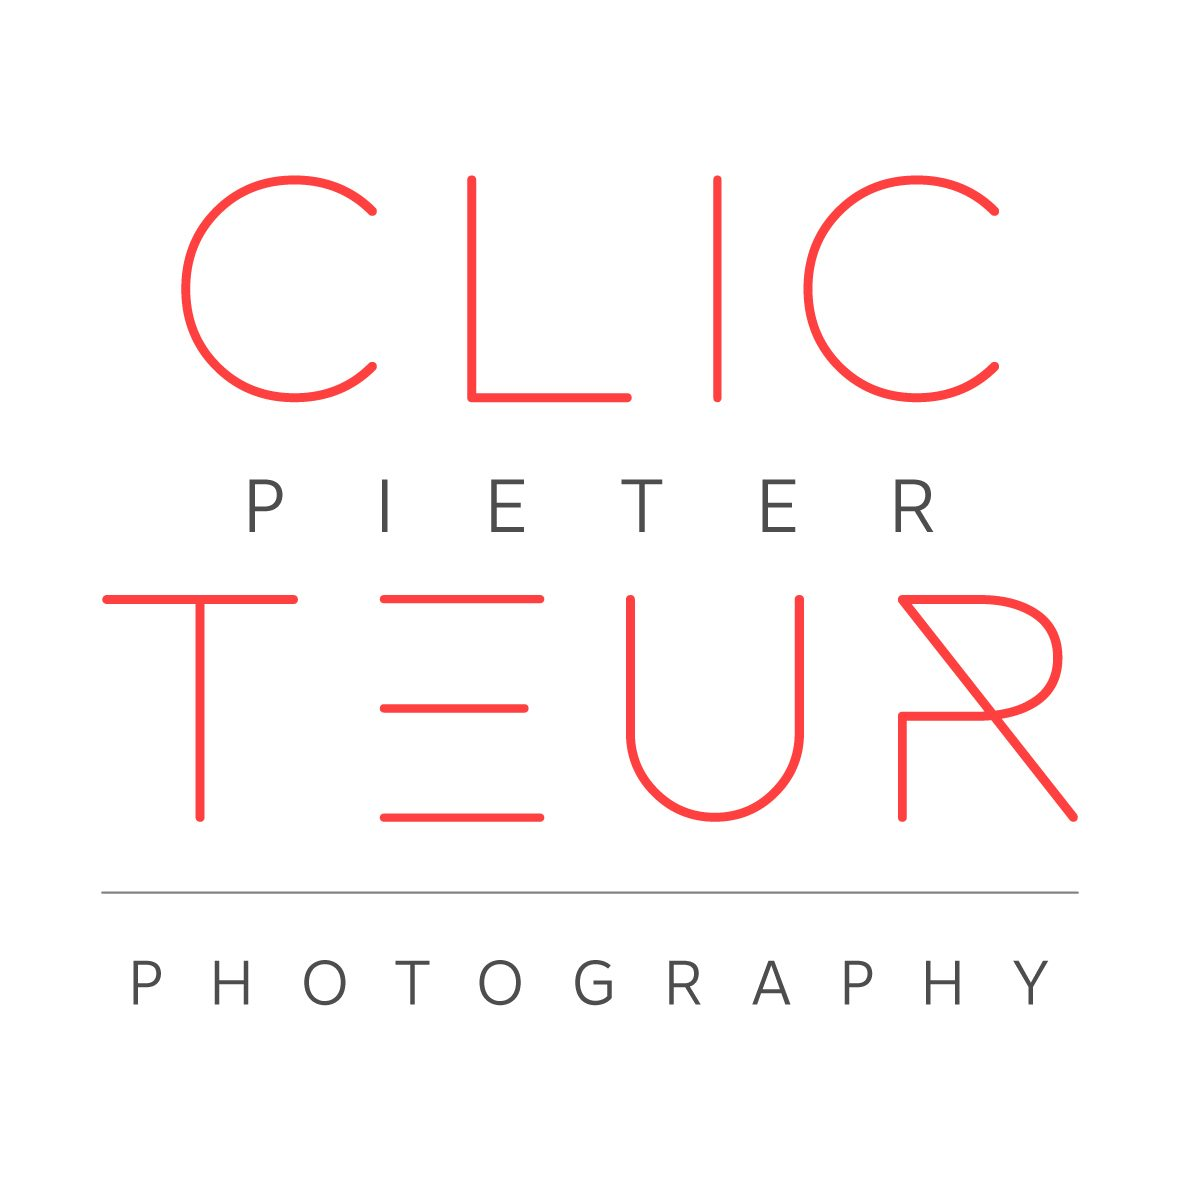 Pieter Clicteur Photography